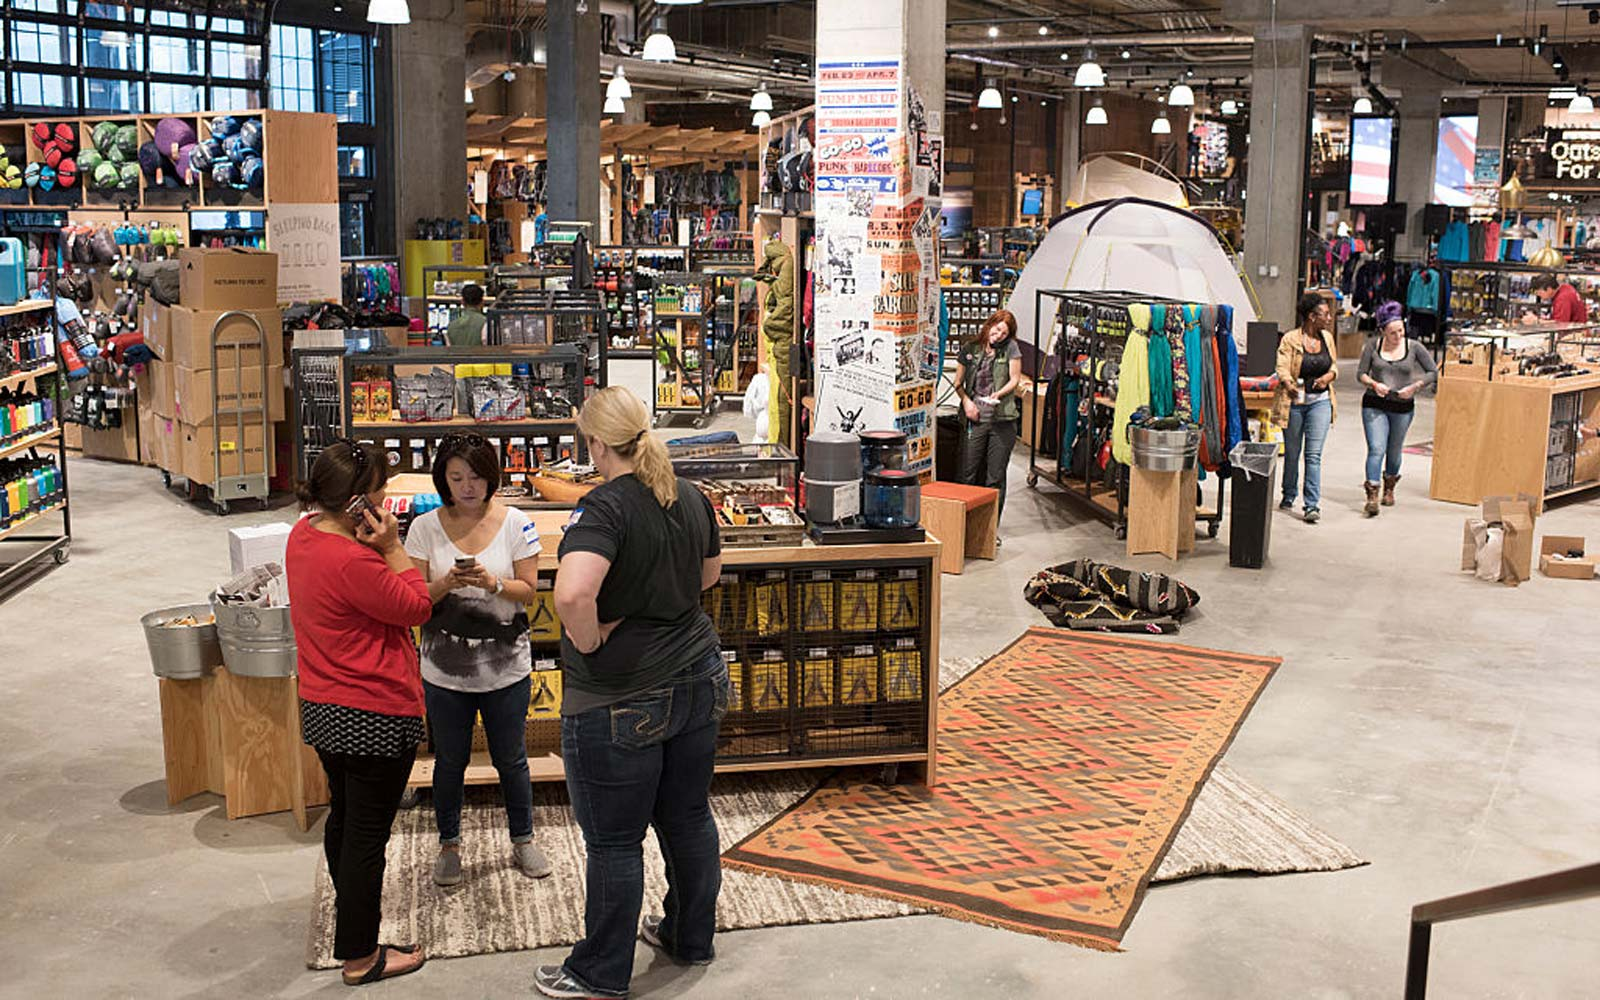 REI is opening it's first store in the District of Columbia